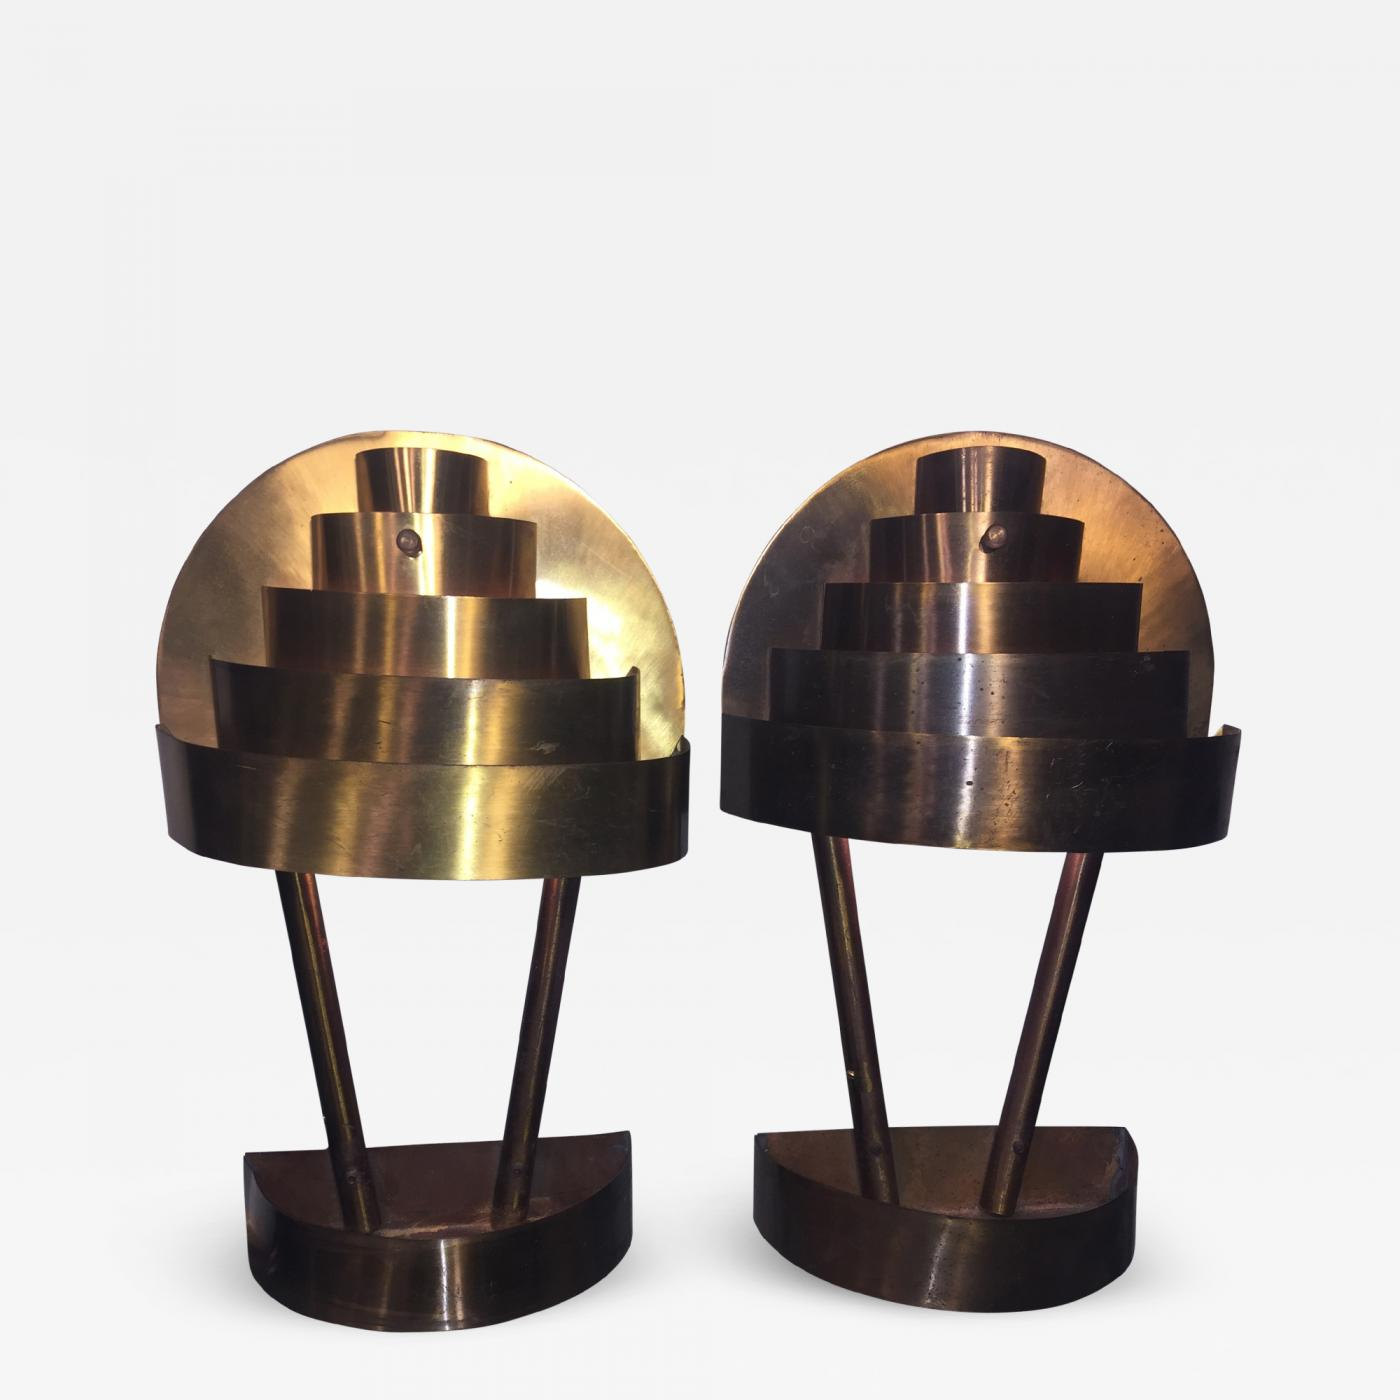 finest selection 8d235 2e053 Kurt Versen - KURT VERSEN MODERNIST ART DECO WALL SCONCES/TABLE LAMPS